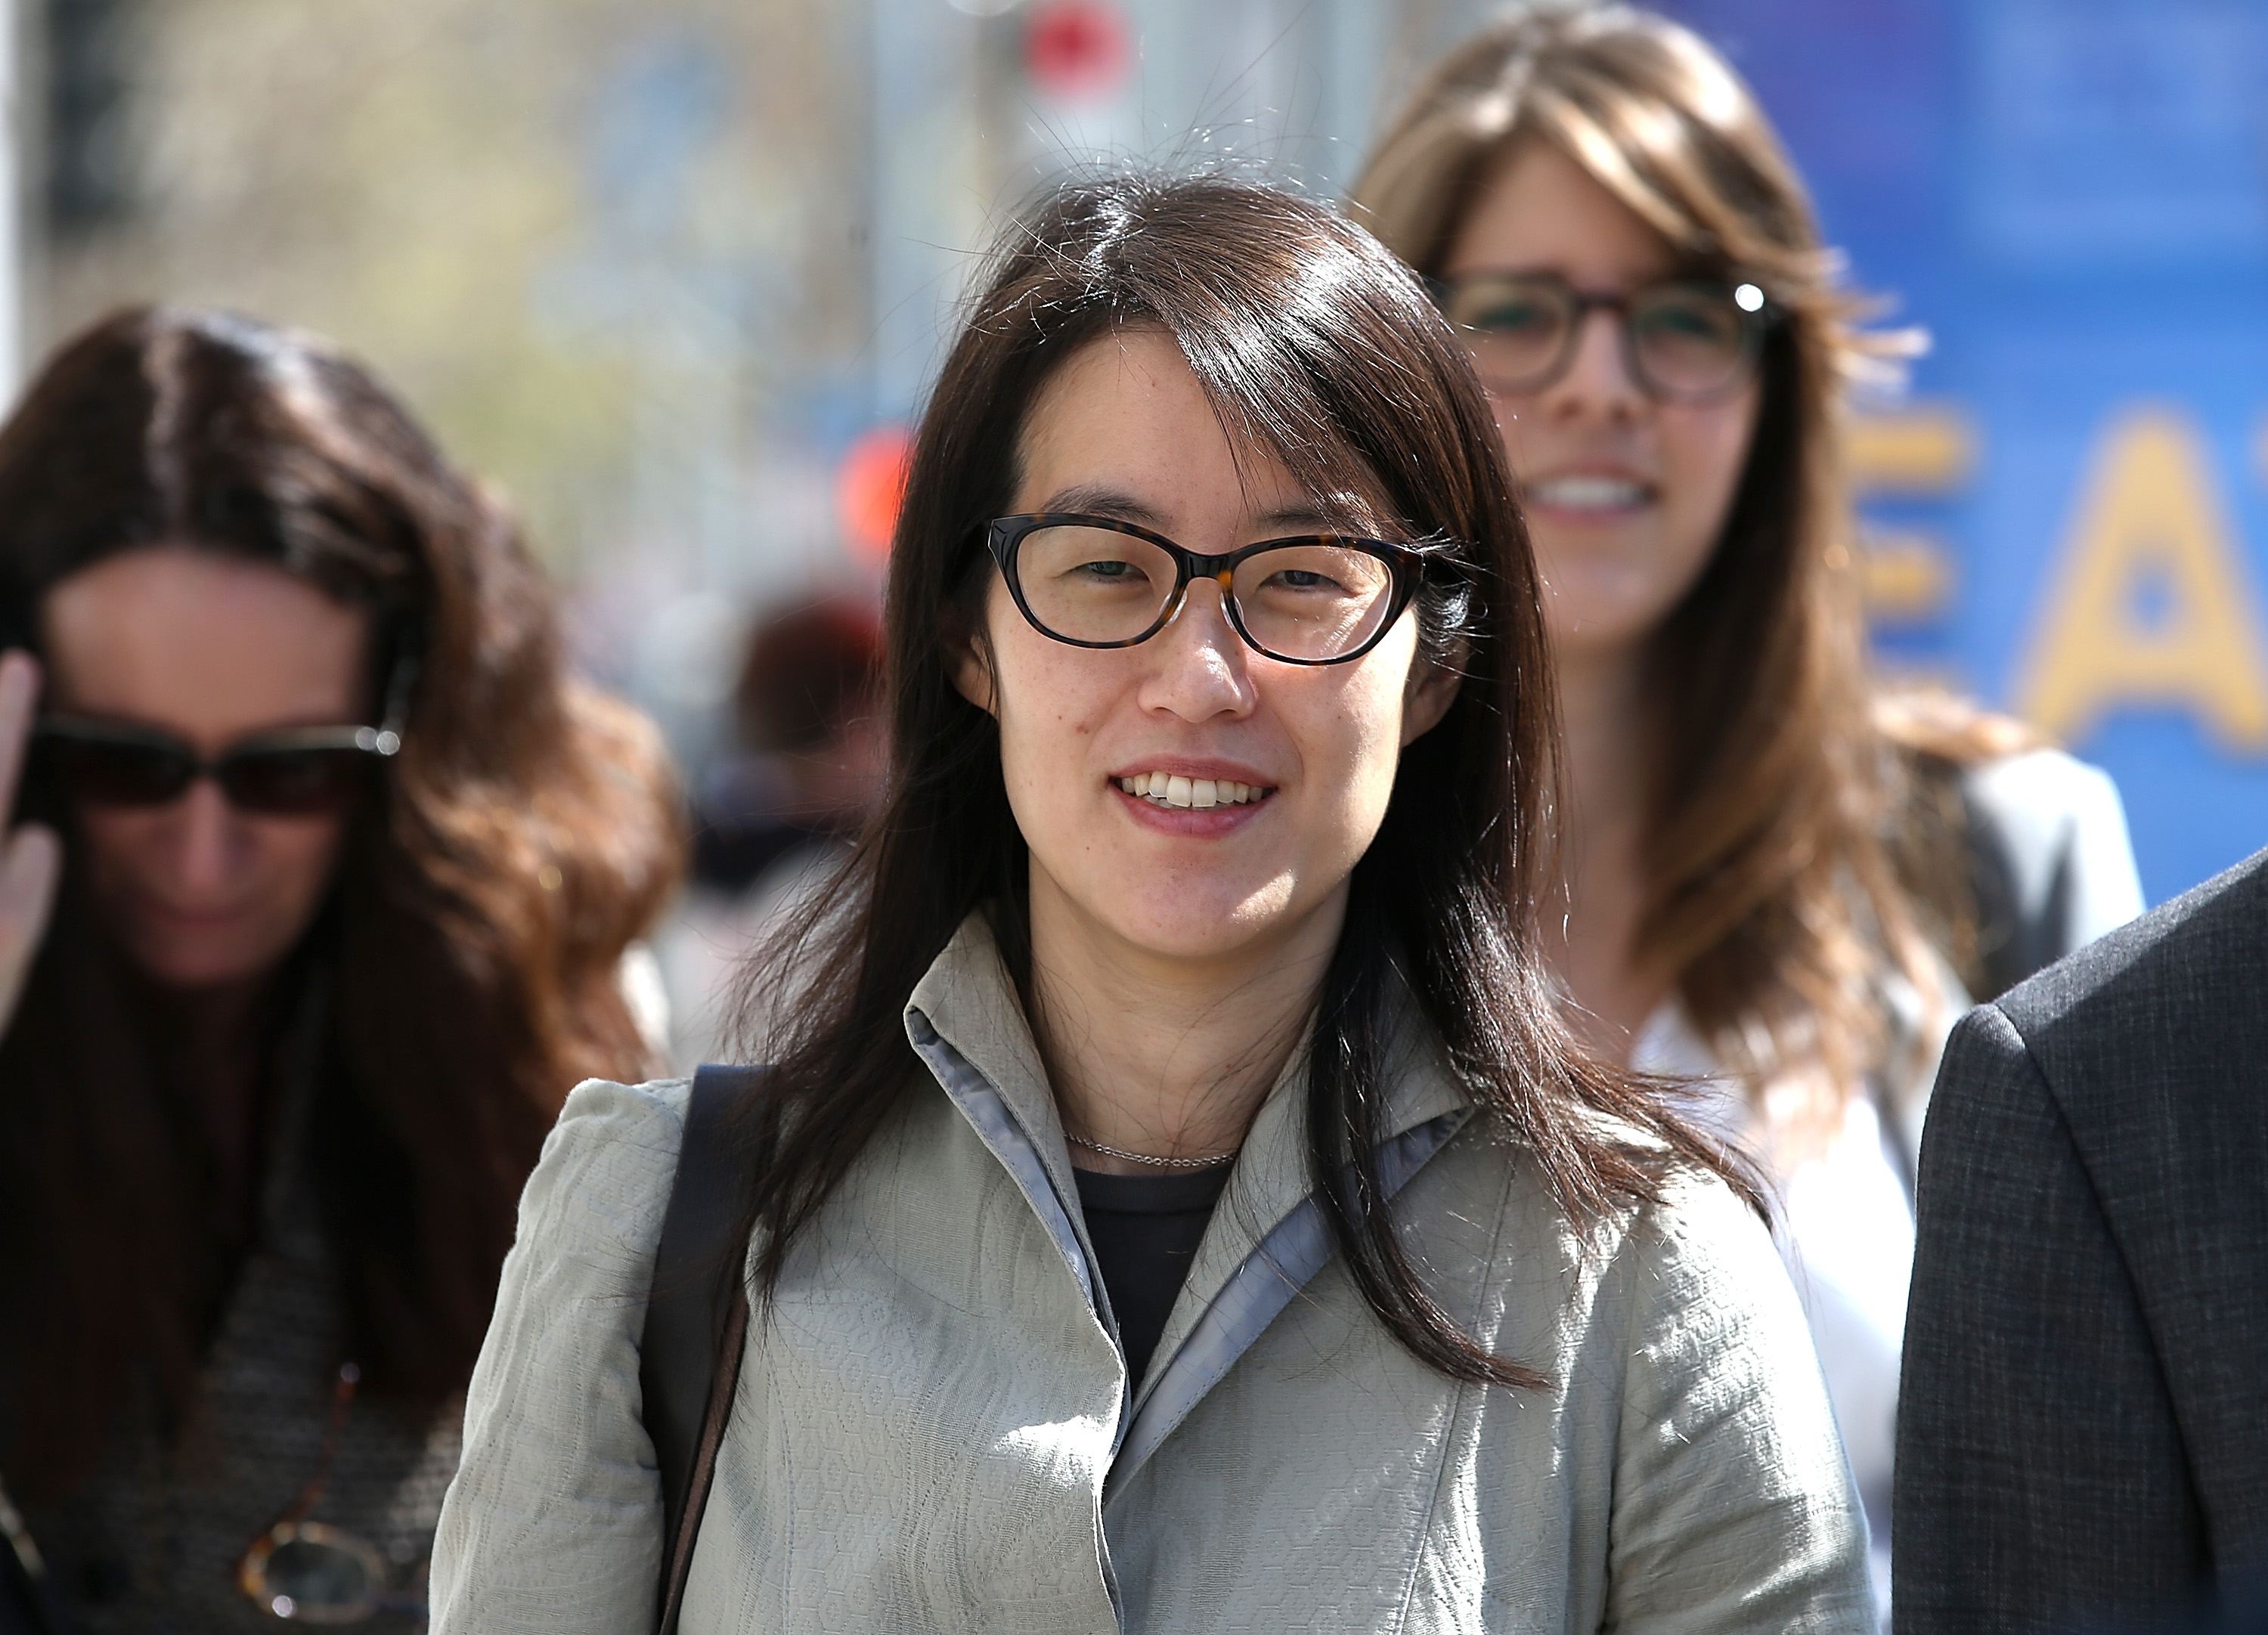 <p>SAN FRANCISCO, CA - MARCH 25:  Ellen Pao leaves the San Francisco Superior Court Civic Center Courthouse with her legal team during a lunch break from her trial on March 25, 2015 in San Francisco, California. Reddit interim CEO Ellen Pao is suing her former employer, Silicon Valley venture capital firm Kleiner Perkins Caulfield and Byers, for $16 million alleging she was sexually harassed by male officials.  (Photo by Justin Sullivan/Getty Images)</p>